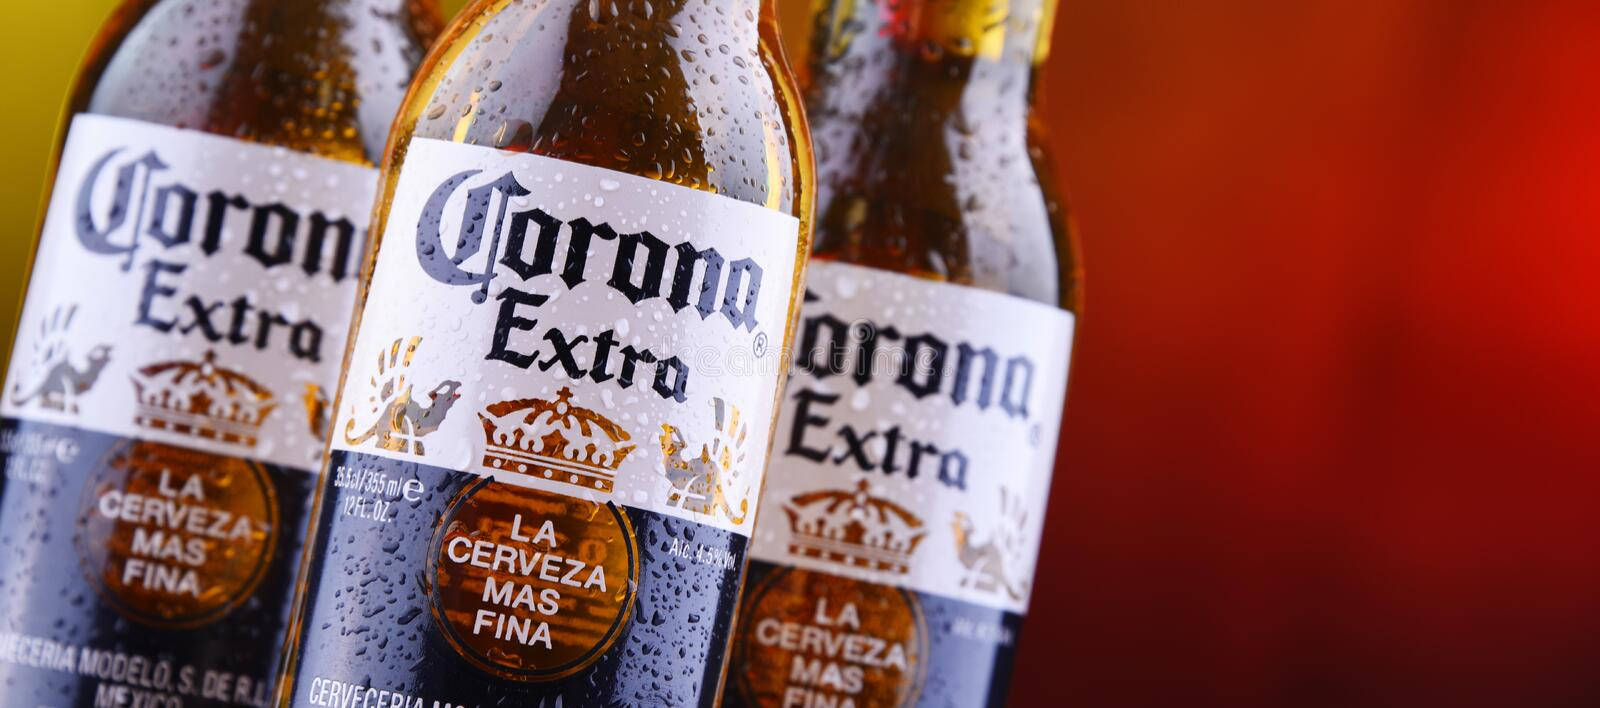 Bottles of Corona Extra beer. POZNAN, POL - MAR 28, 2019: Bottles of Corona Extra, one of the top-selling beers worldwide, a pale lager produced by Cerveceria stock photography